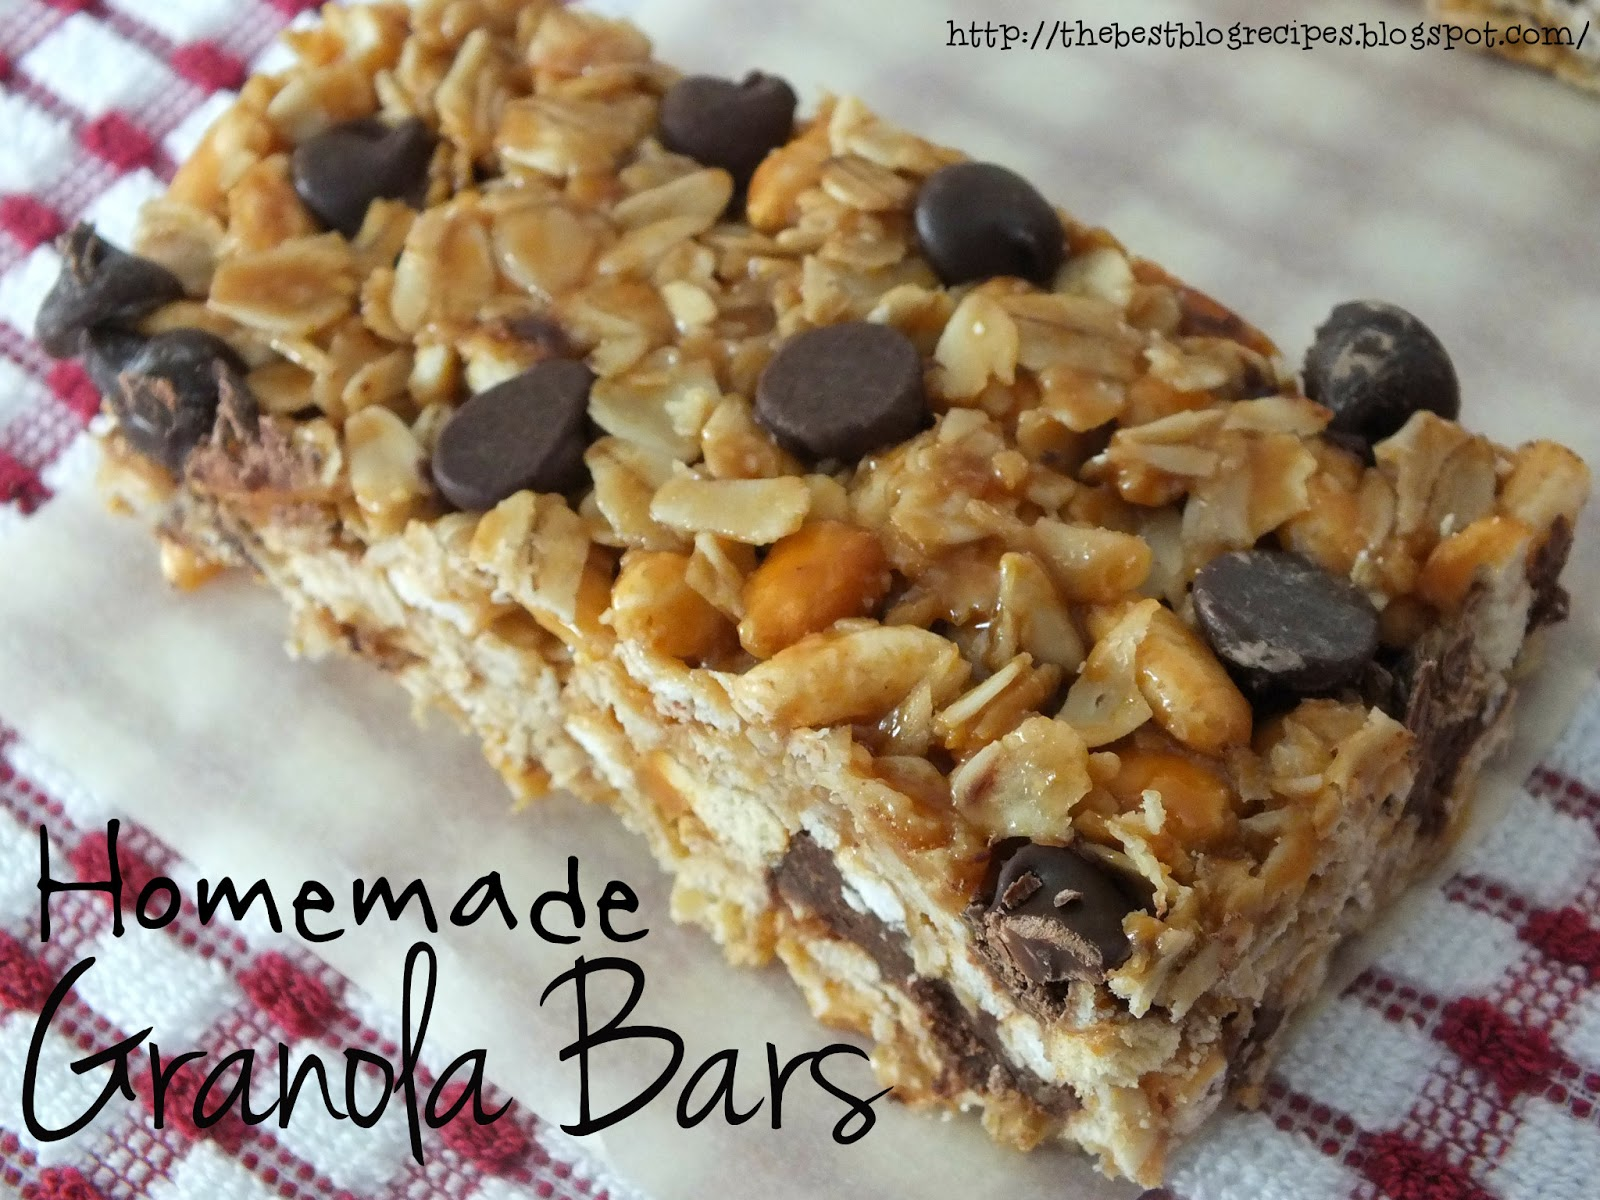 Homemade+Granola+Bars+recipe+from+{The+Best+Blog+Recipe}+.jpg